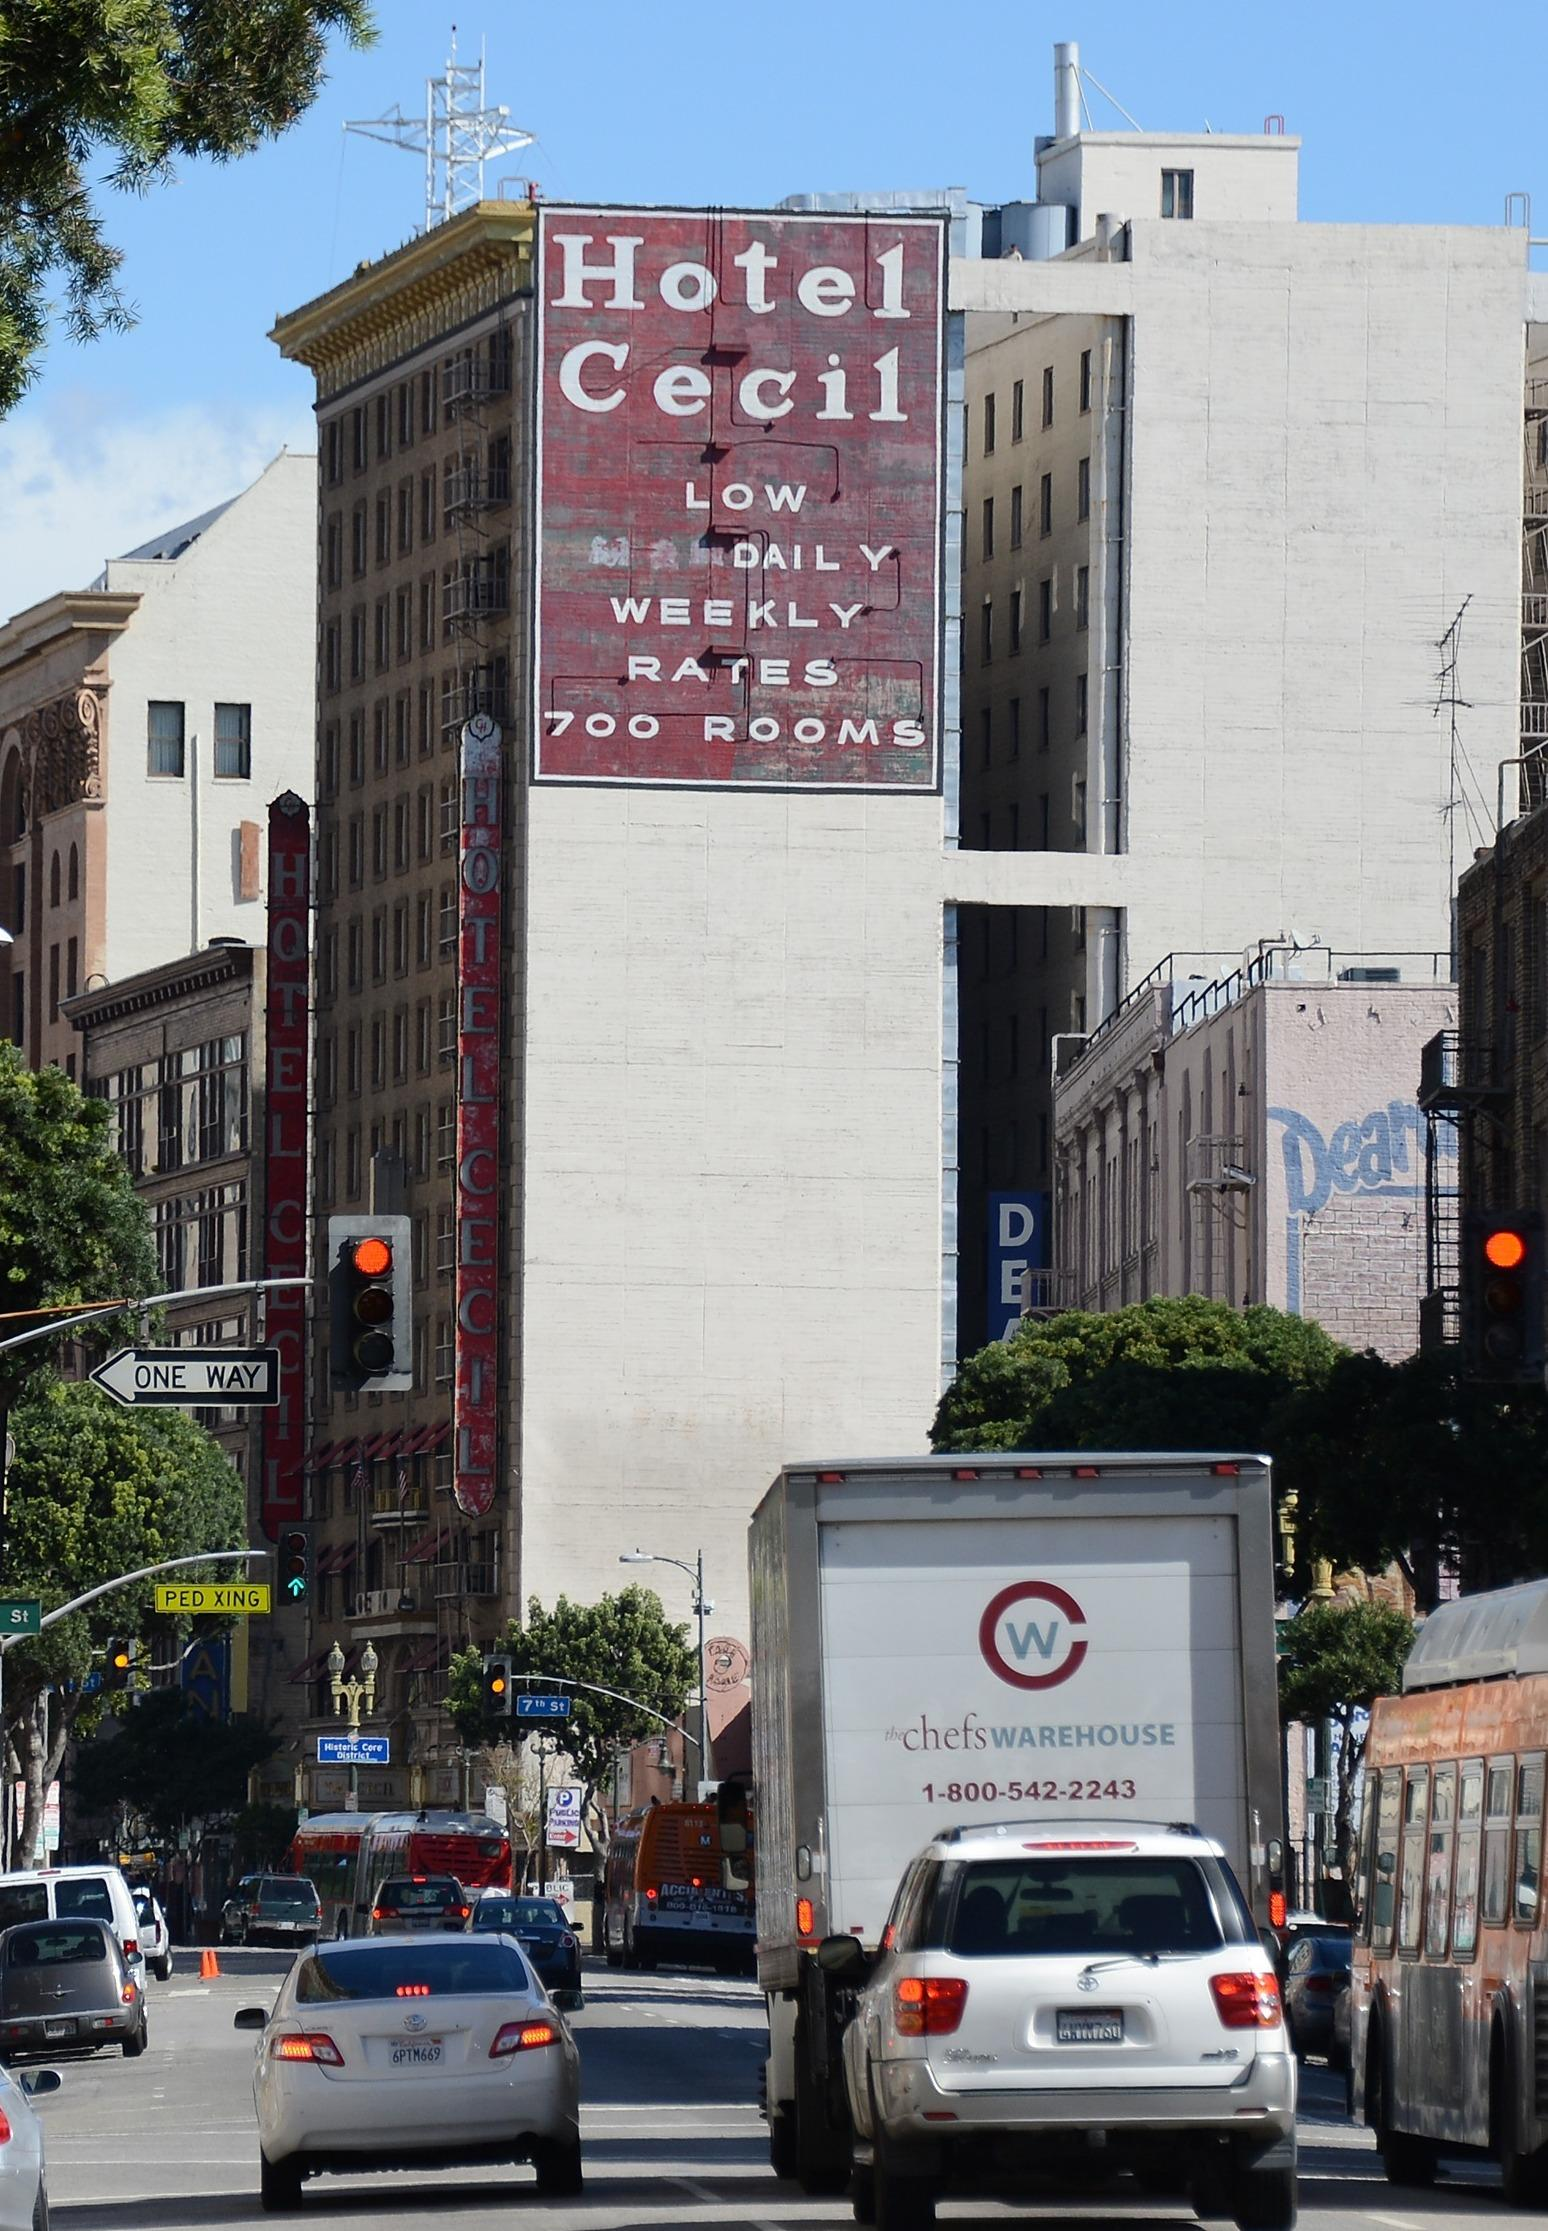 The Cecil Hotel In Los Angeles Which Advertises Low Monthly Rates